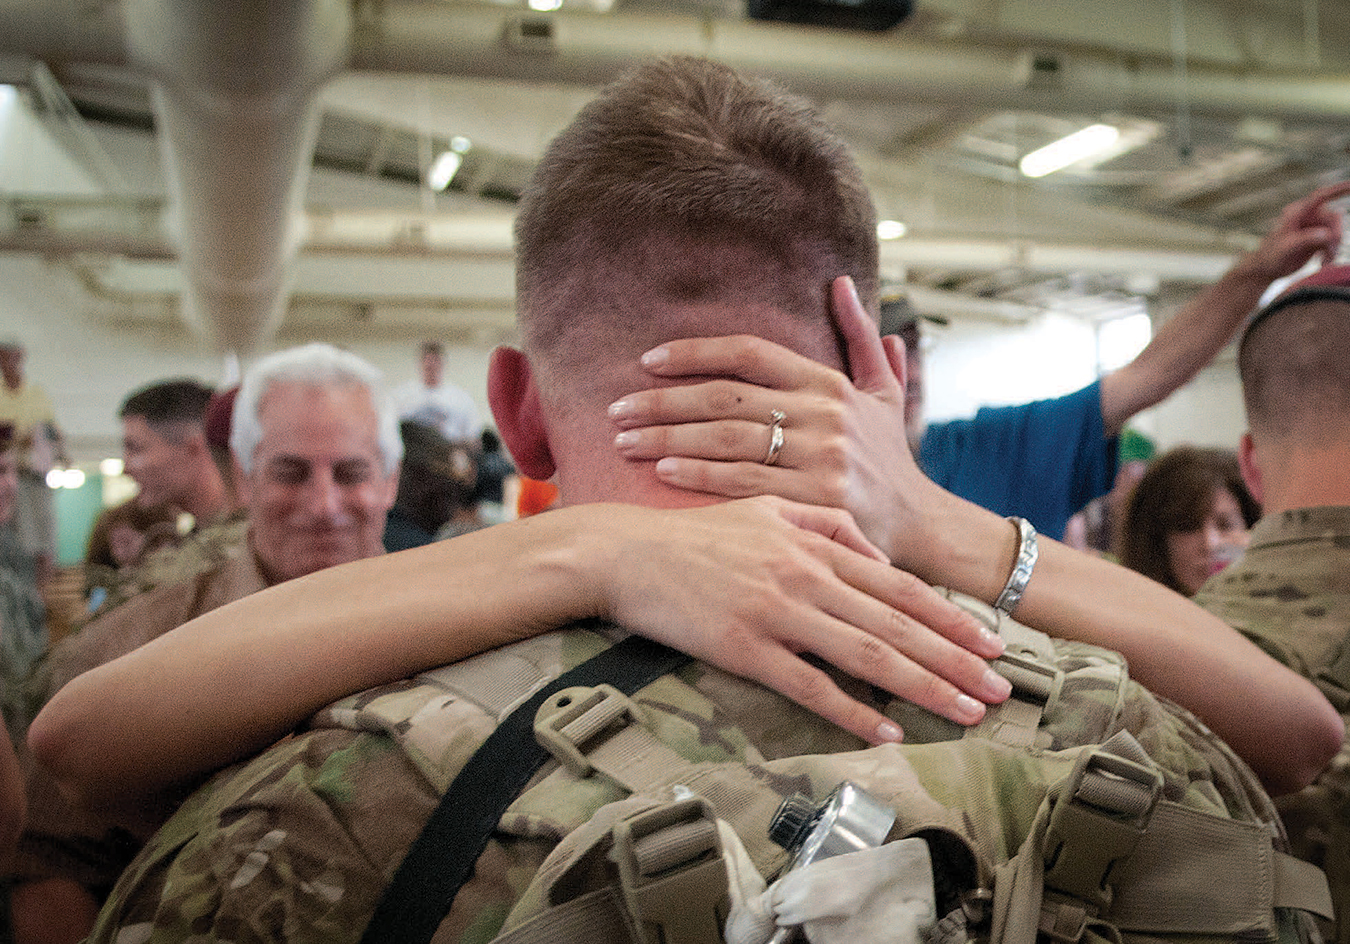 A SOLDIER RETURNS HOME TO HIS WIFE FOLLOWING A VIOLENT COMBAT TOUR IN AFGHANISTAN.